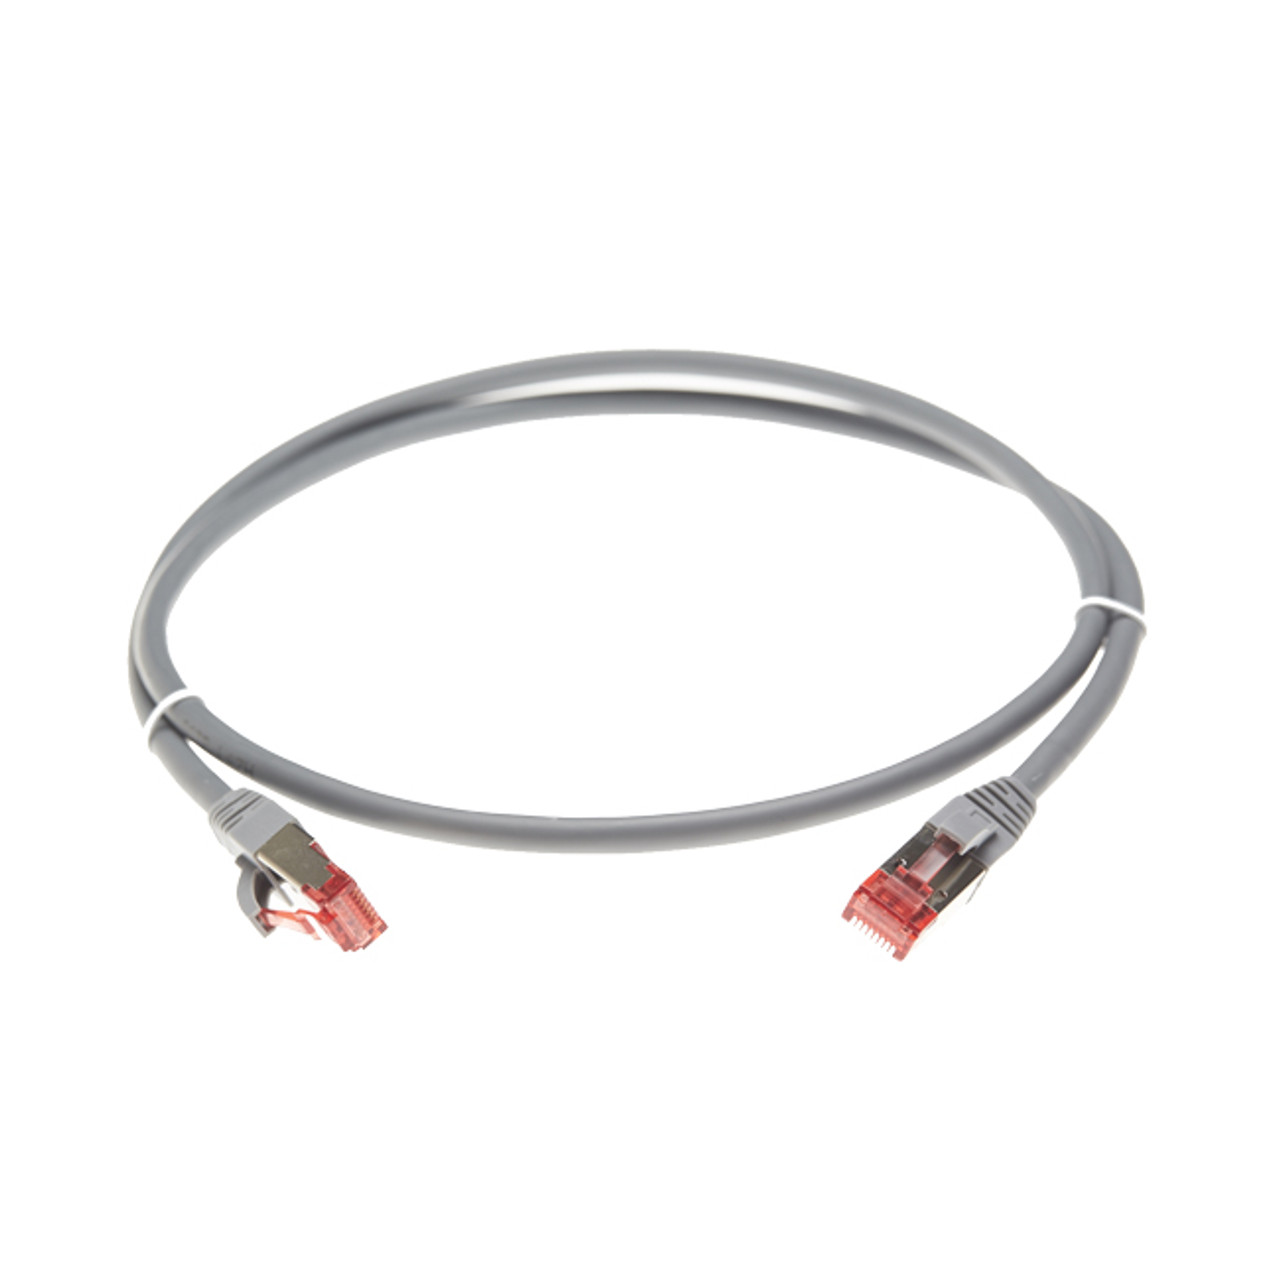 Image for 20m Cat 6A S/FTP LSZH Ethernet Network Cable. Grey CX Computer Superstore